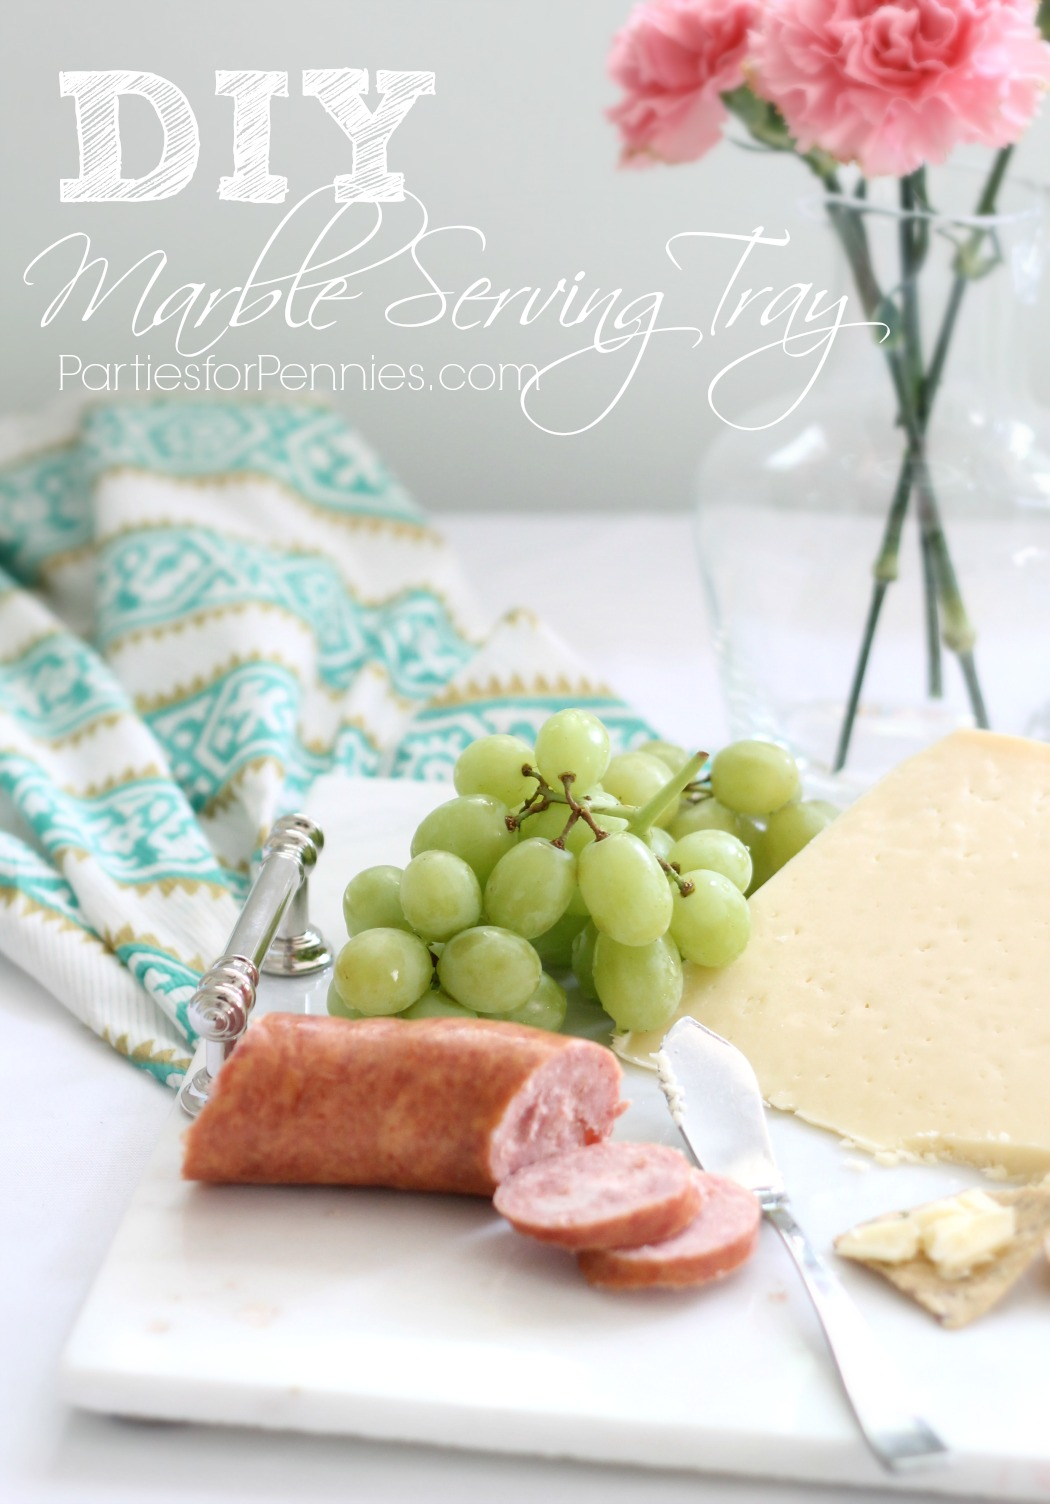 DIY Marble Serving Tray | PartiesforPennies.com | #diy #gift #homemade #marbletray